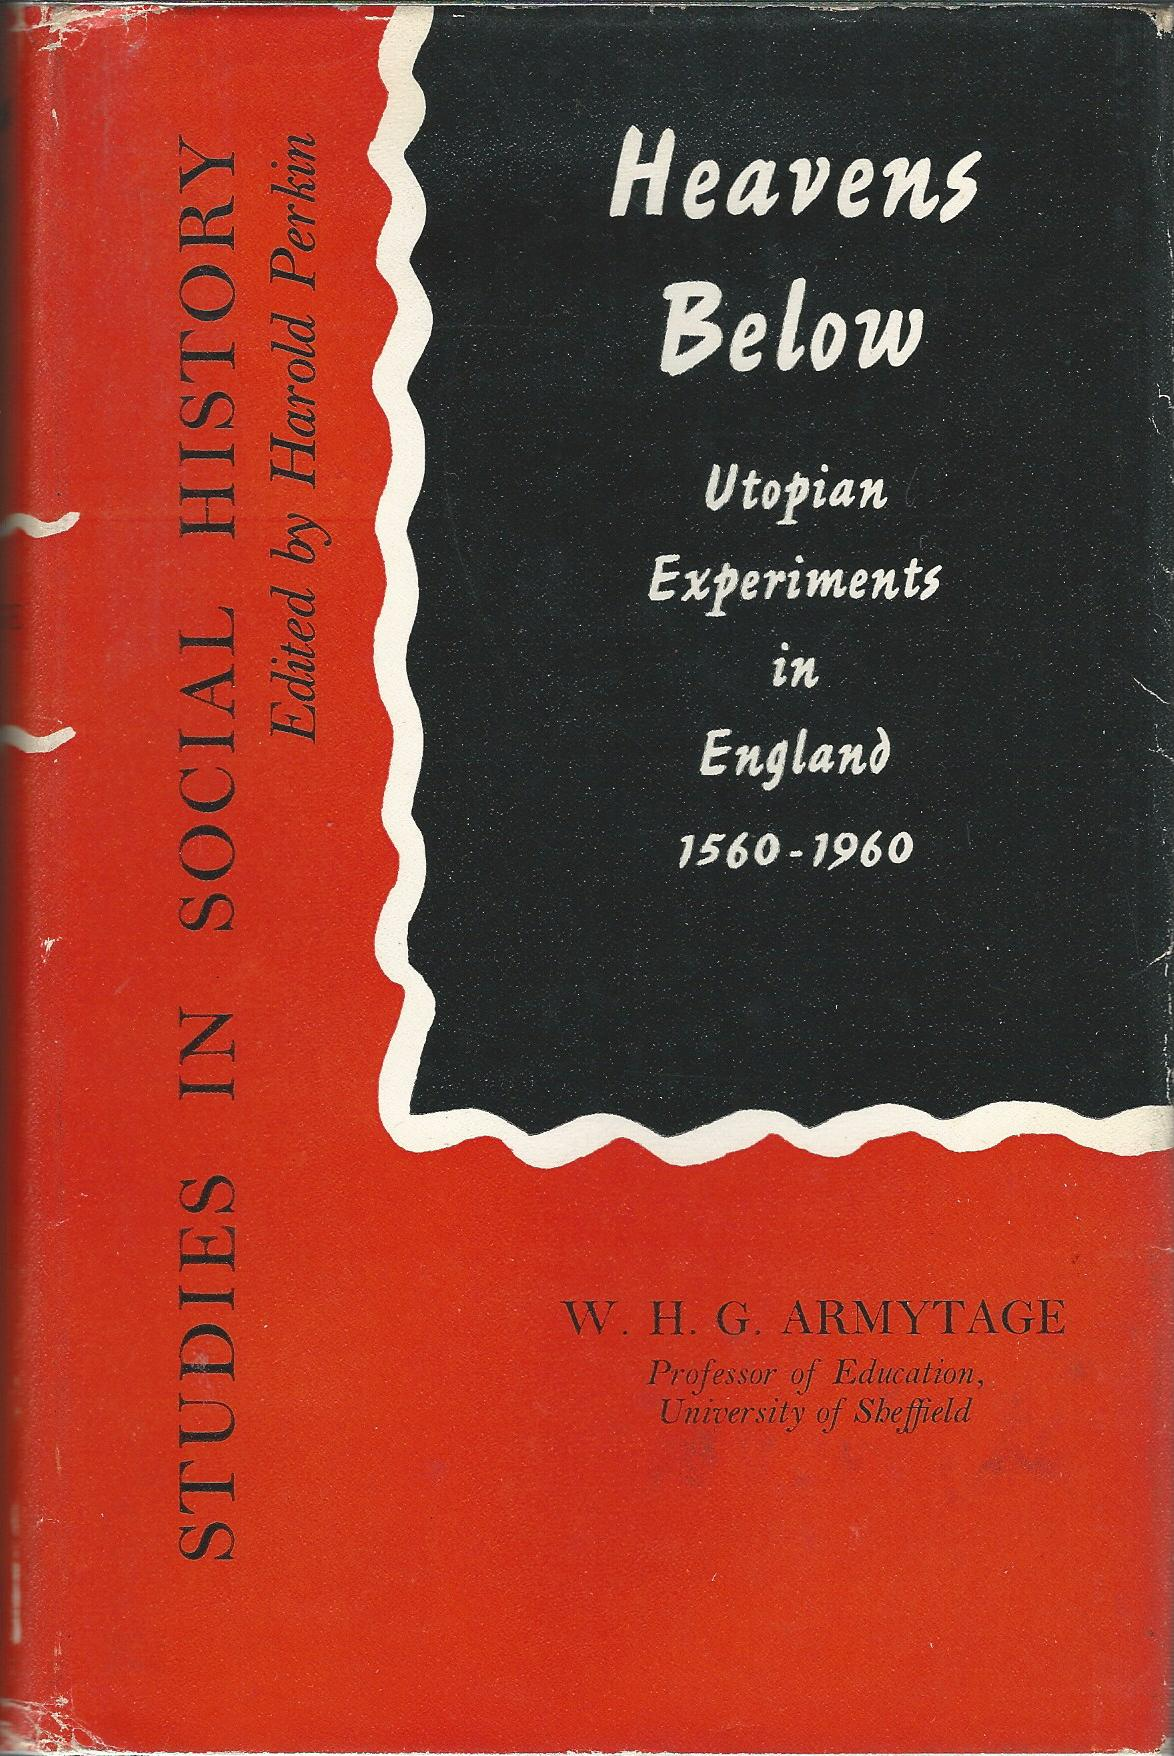 Image for Heavens Below: Utopian Experiments in England 1560 - 1960.